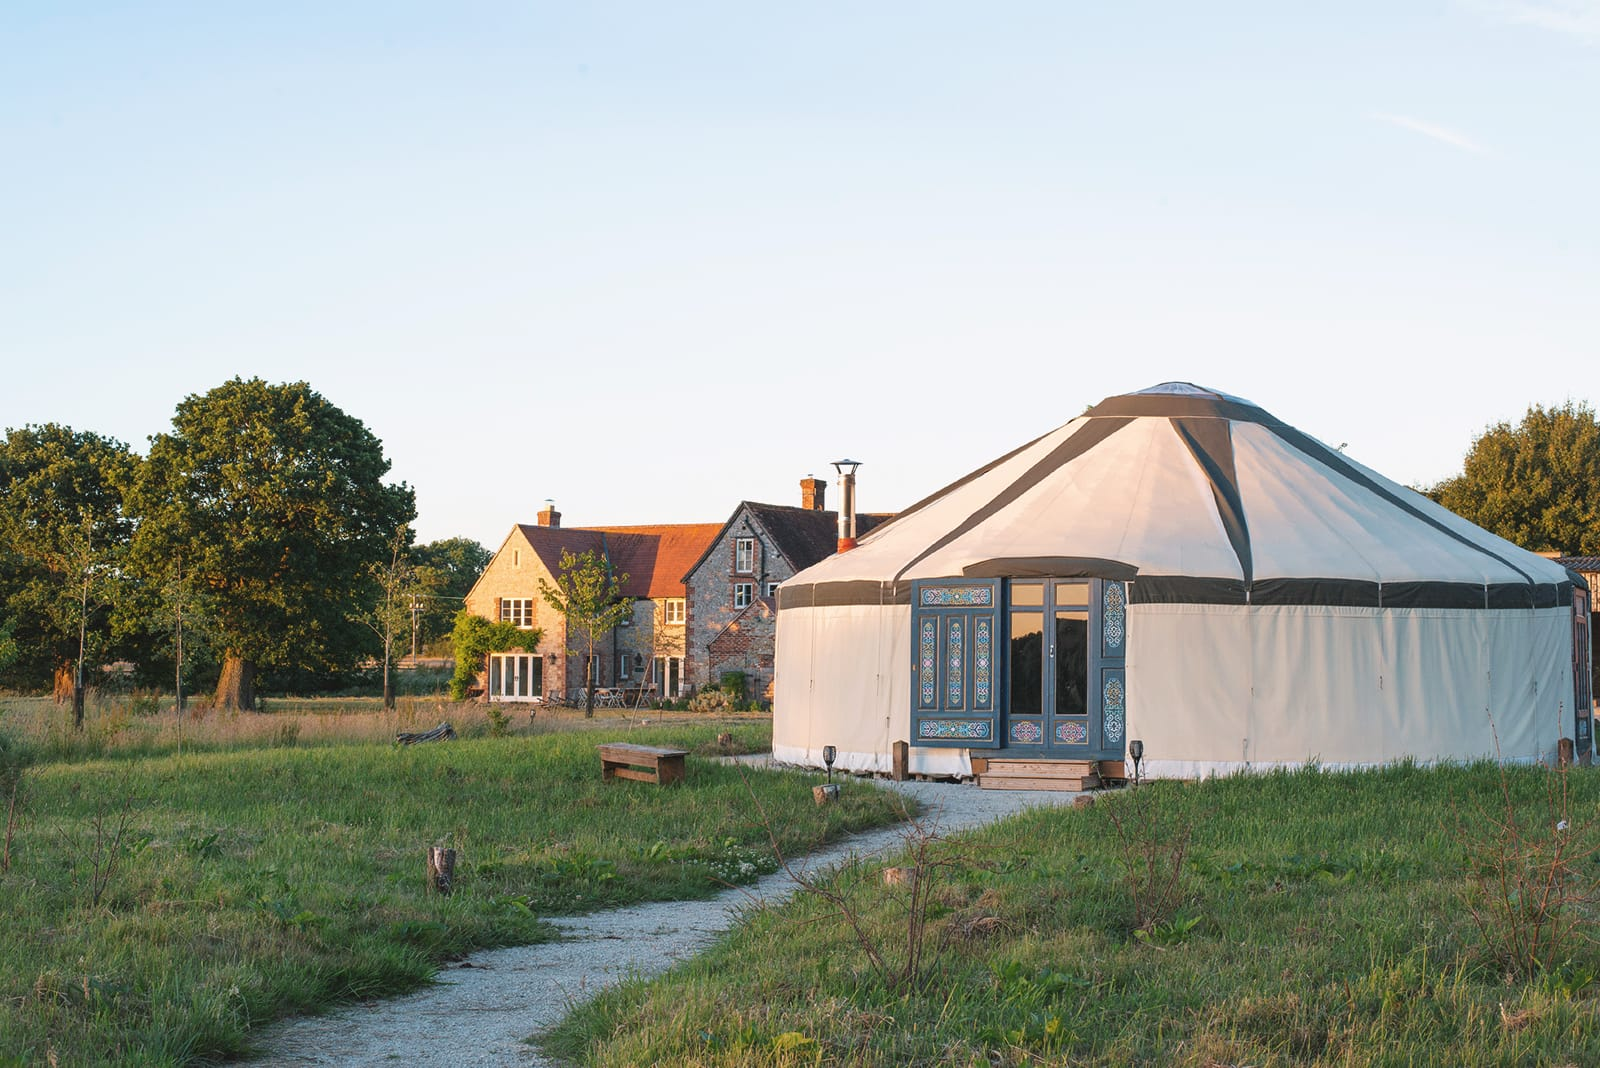 Yurt with main farmhouse in the background